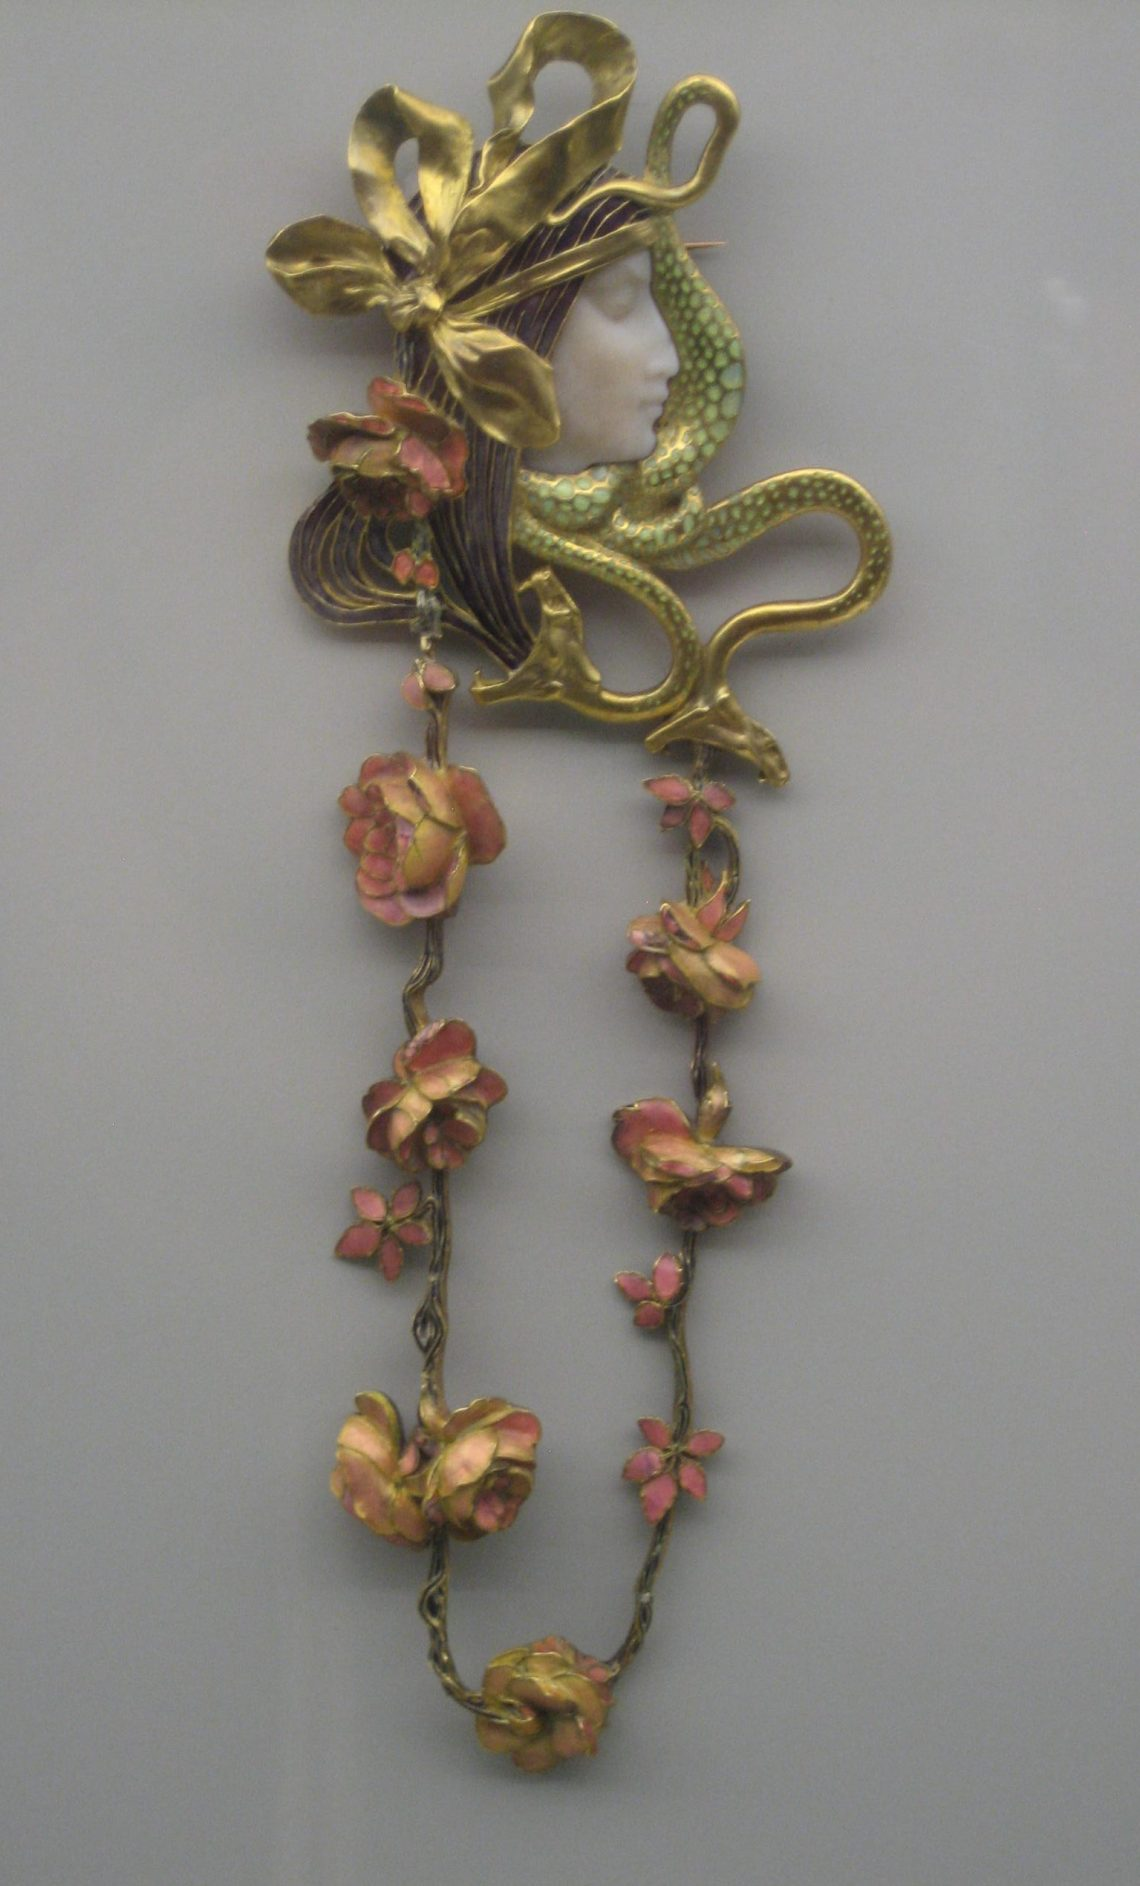 René Lalique, broche, 1898-1899. Collectie Grassimuseum. Foto Esther Doornbusch, CC BY 4.0